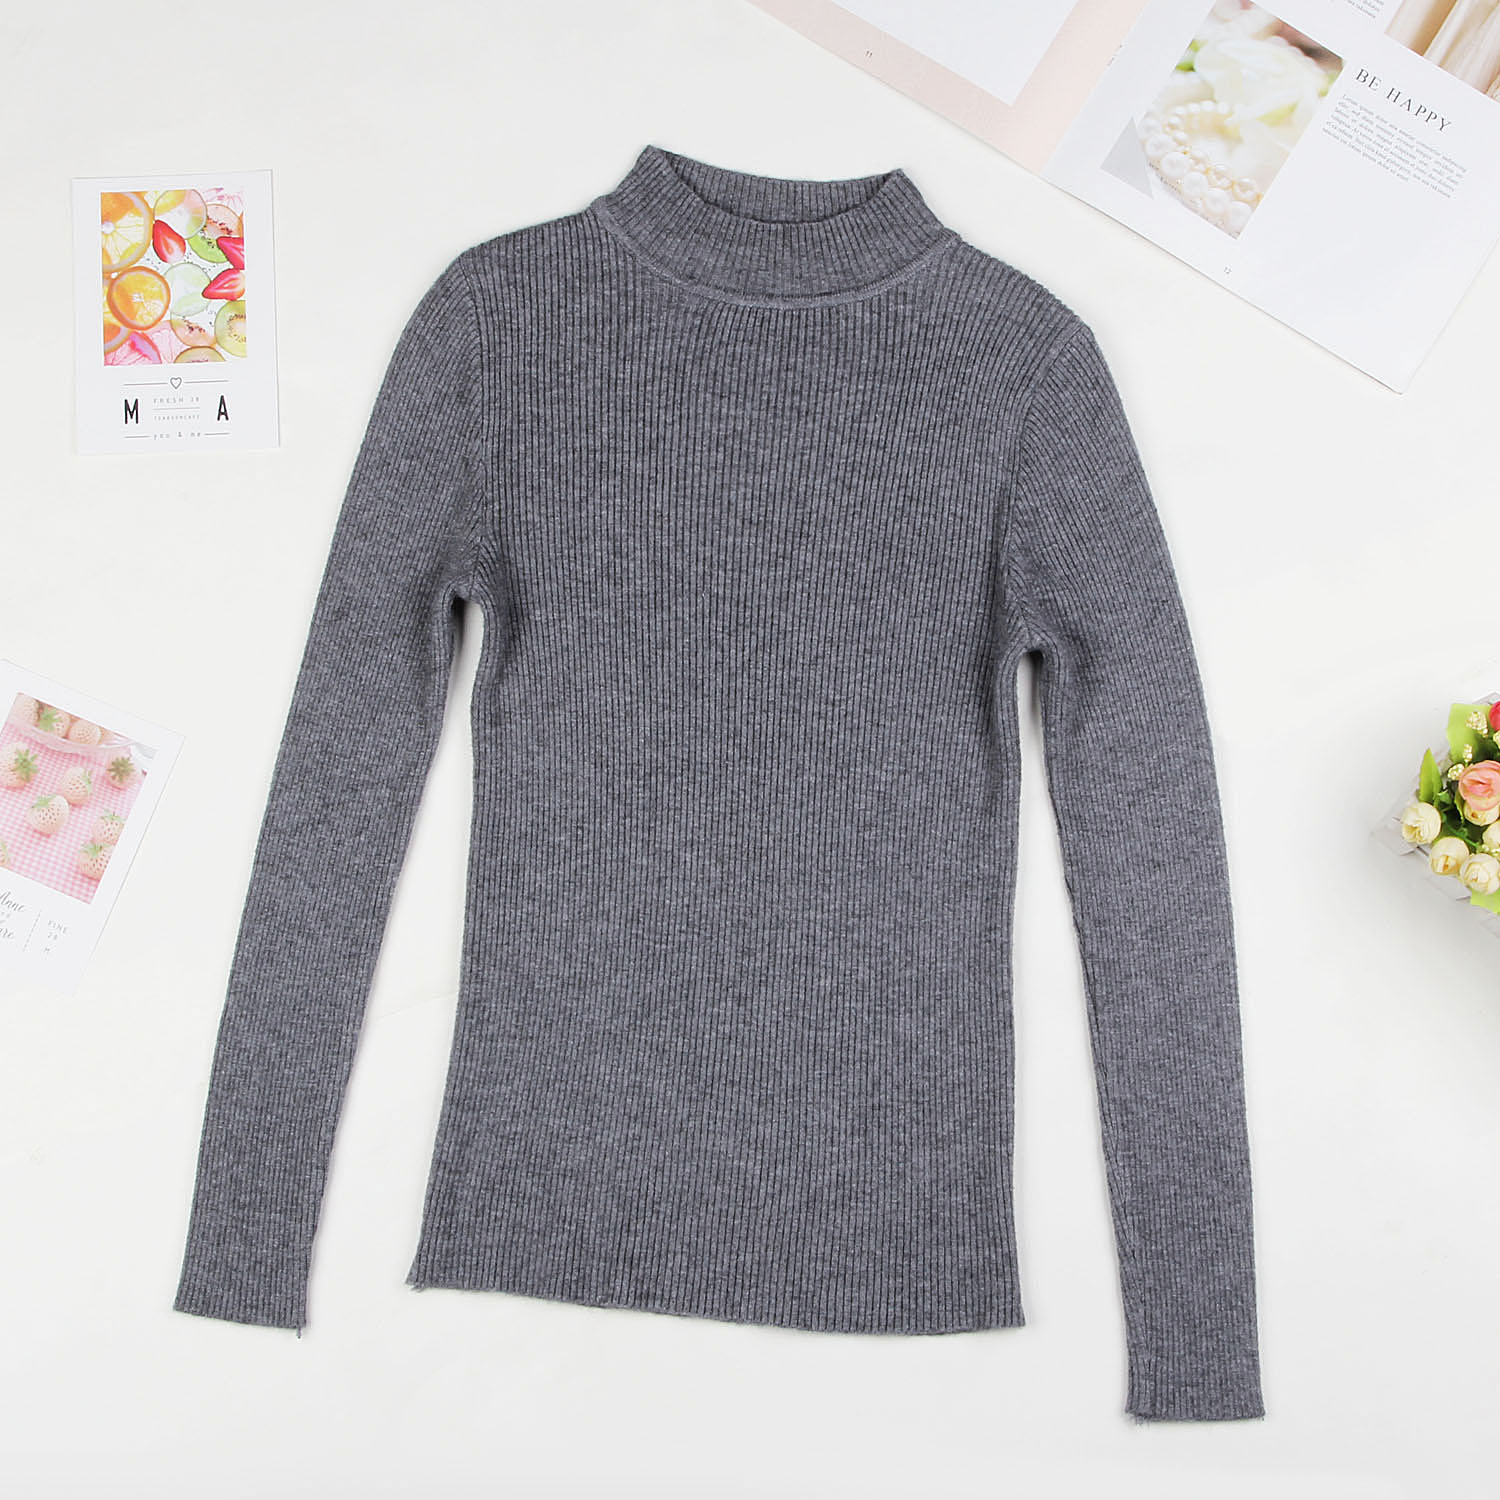 DeRuiLaDy 19 Fall New Women Turtleneck Sweater Pullover Black Pink Knitted Slim Sweaters Tops Winter Casual Sweater Jumper Top 12